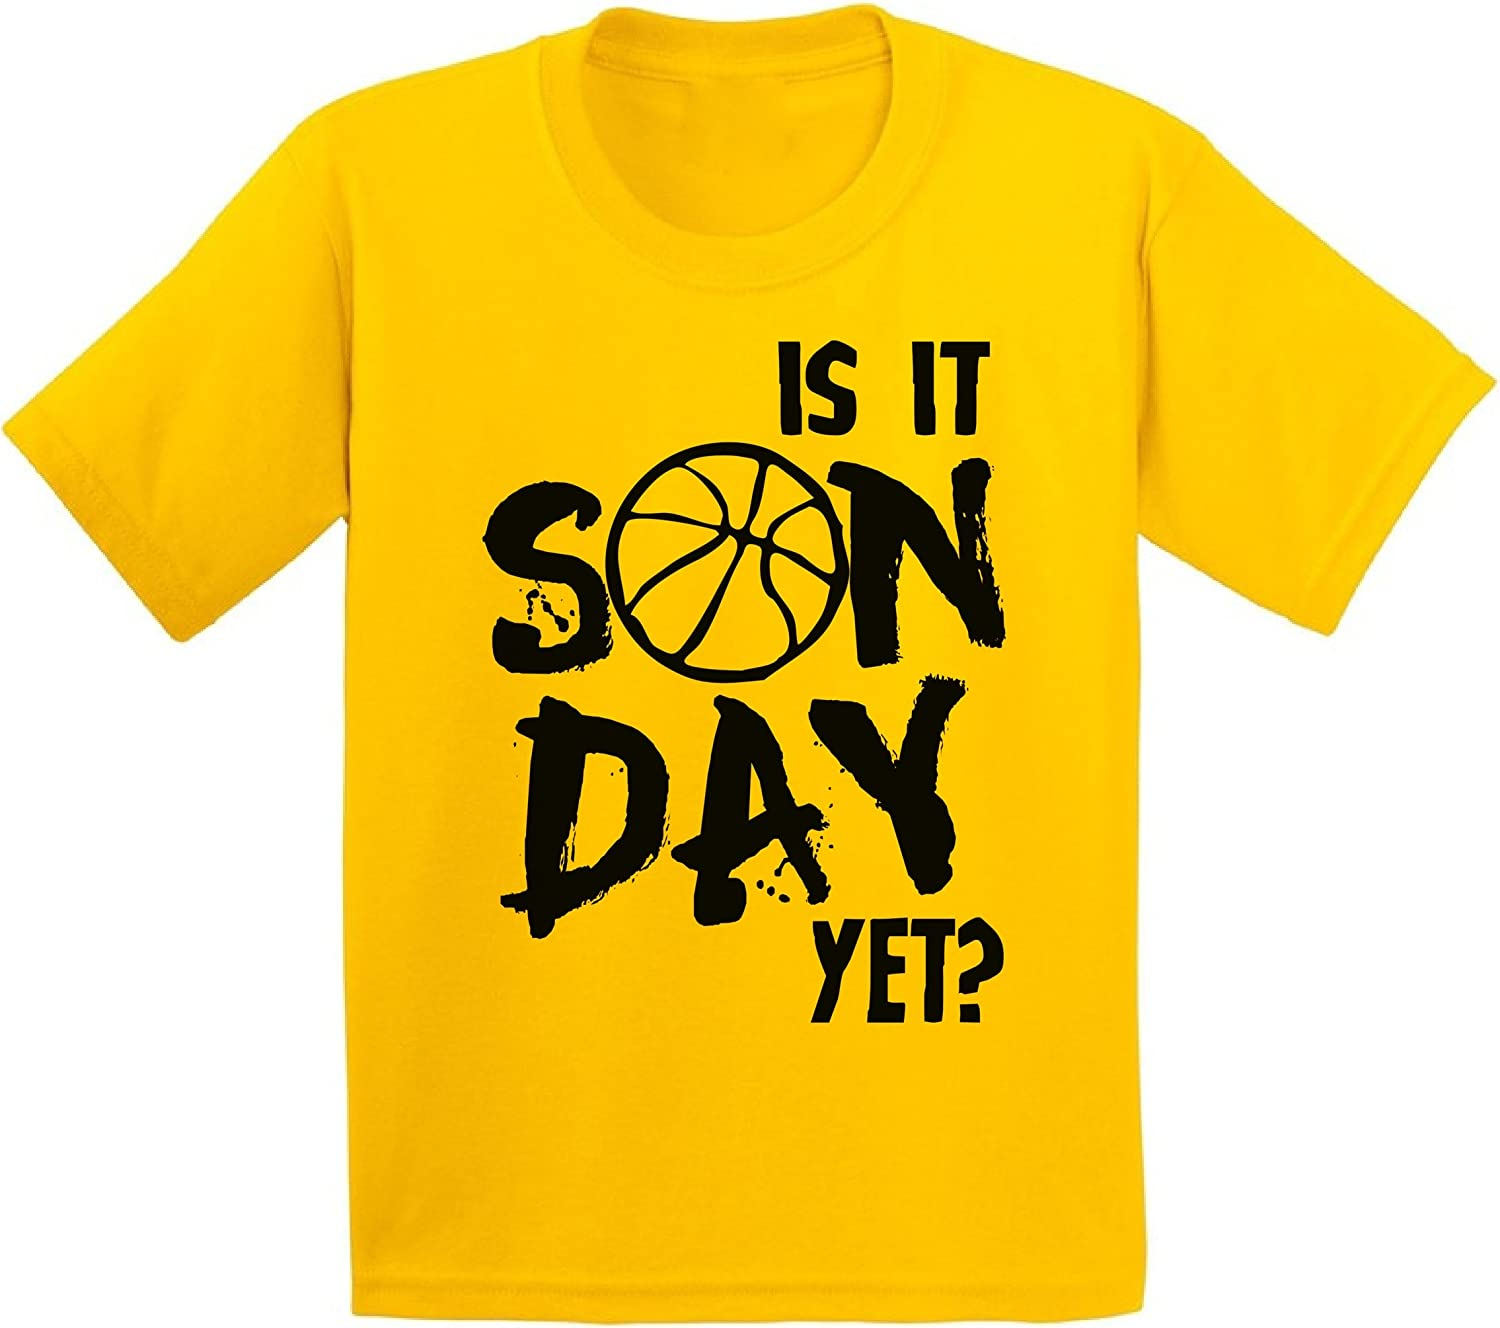 Awkward Styles Youth is It Sunday Yet Basketball Graphic Youth Kids T Shirt Tops